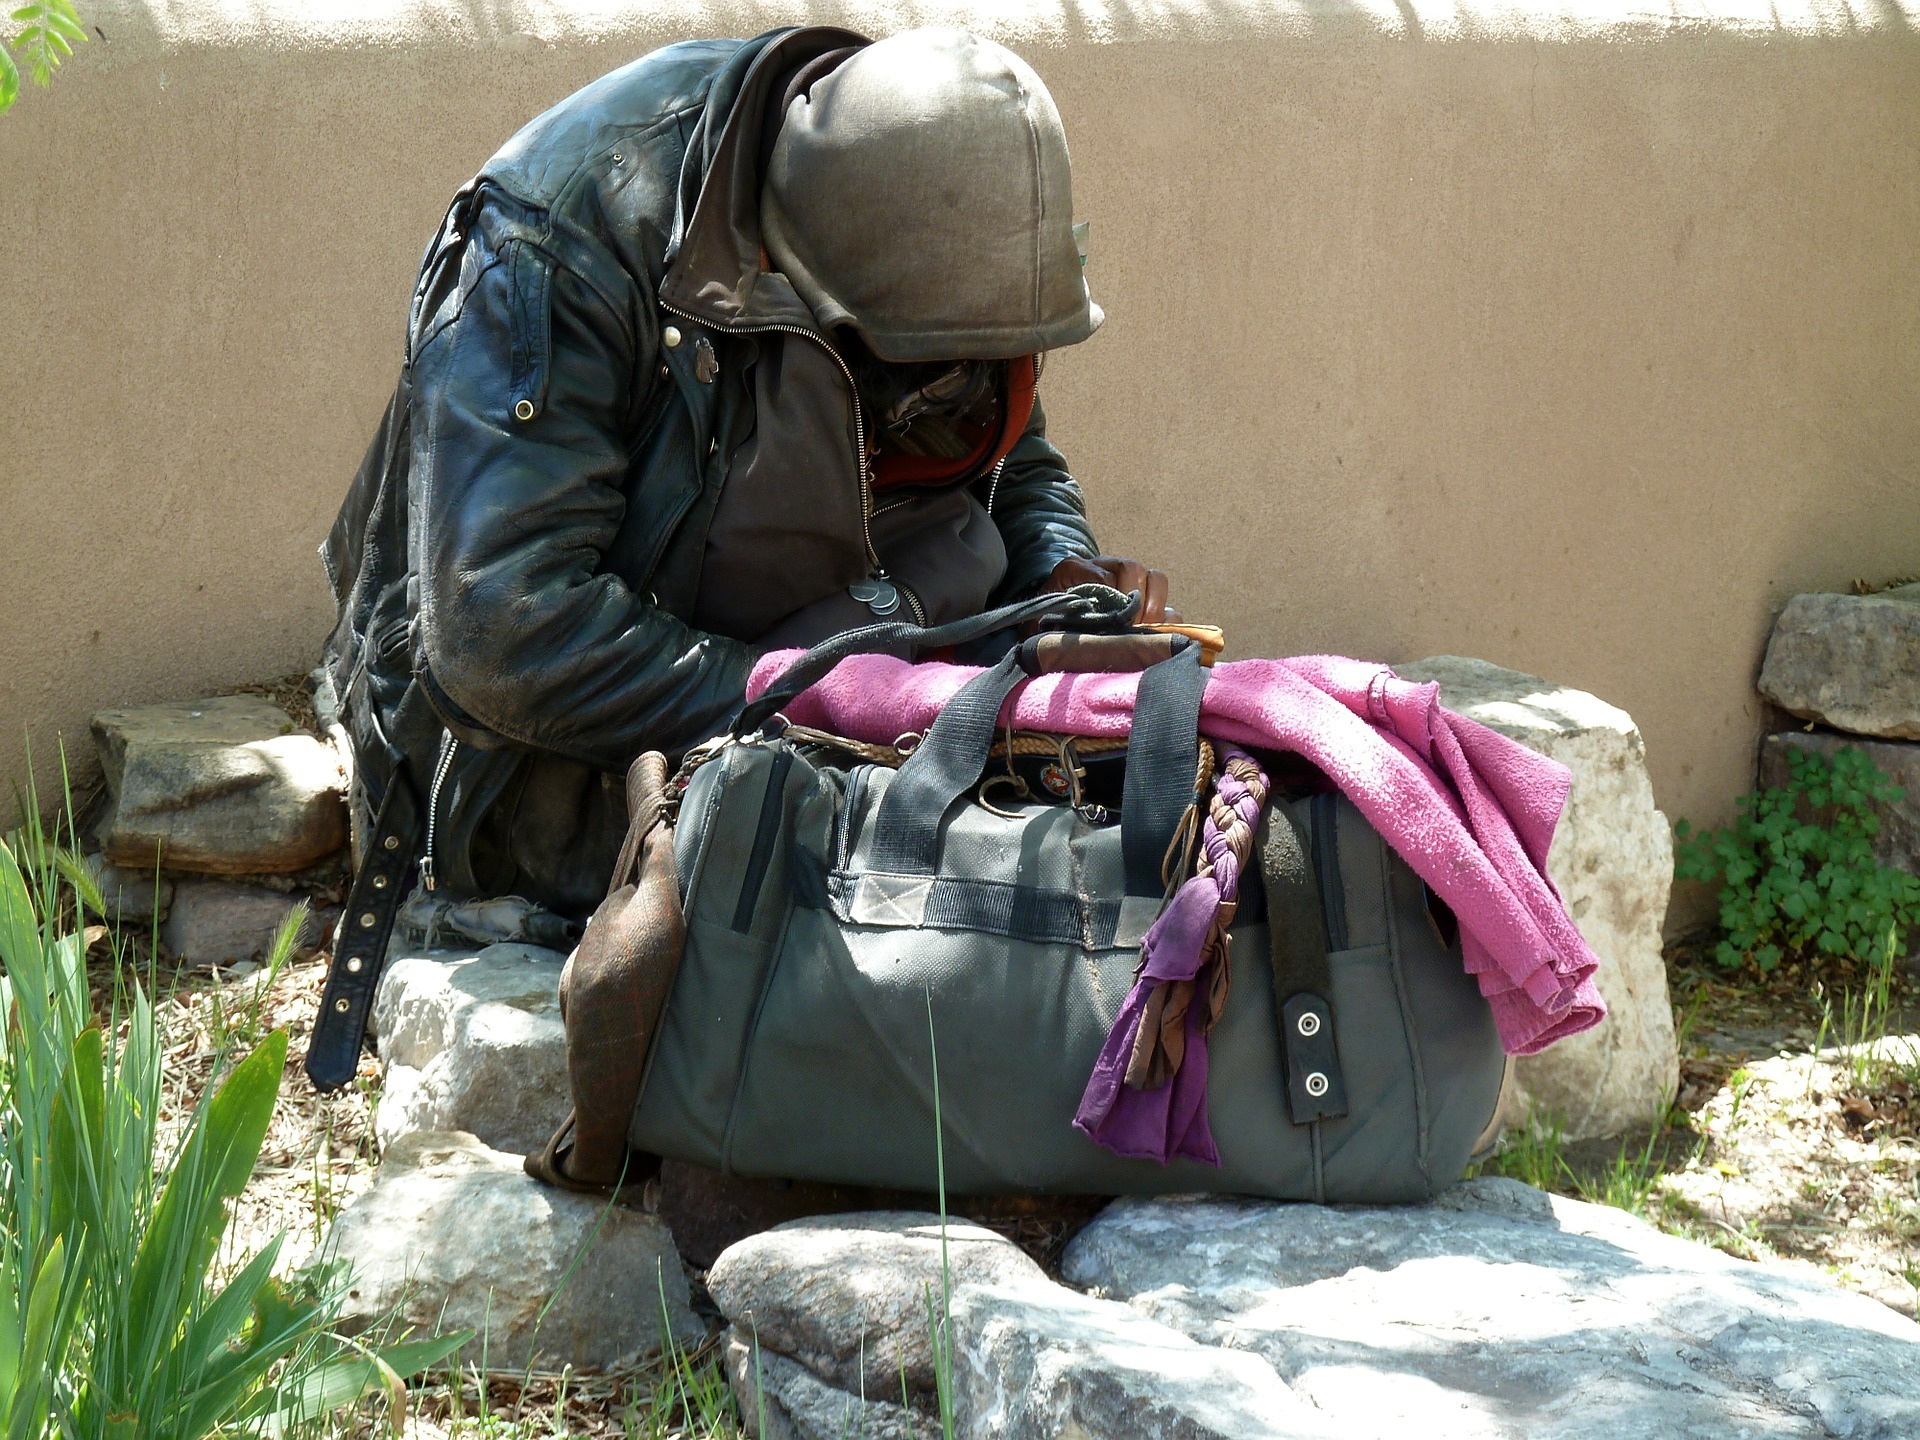 Housing scheme aims to get 675 homeless people off the streets. Pic: Pixabay